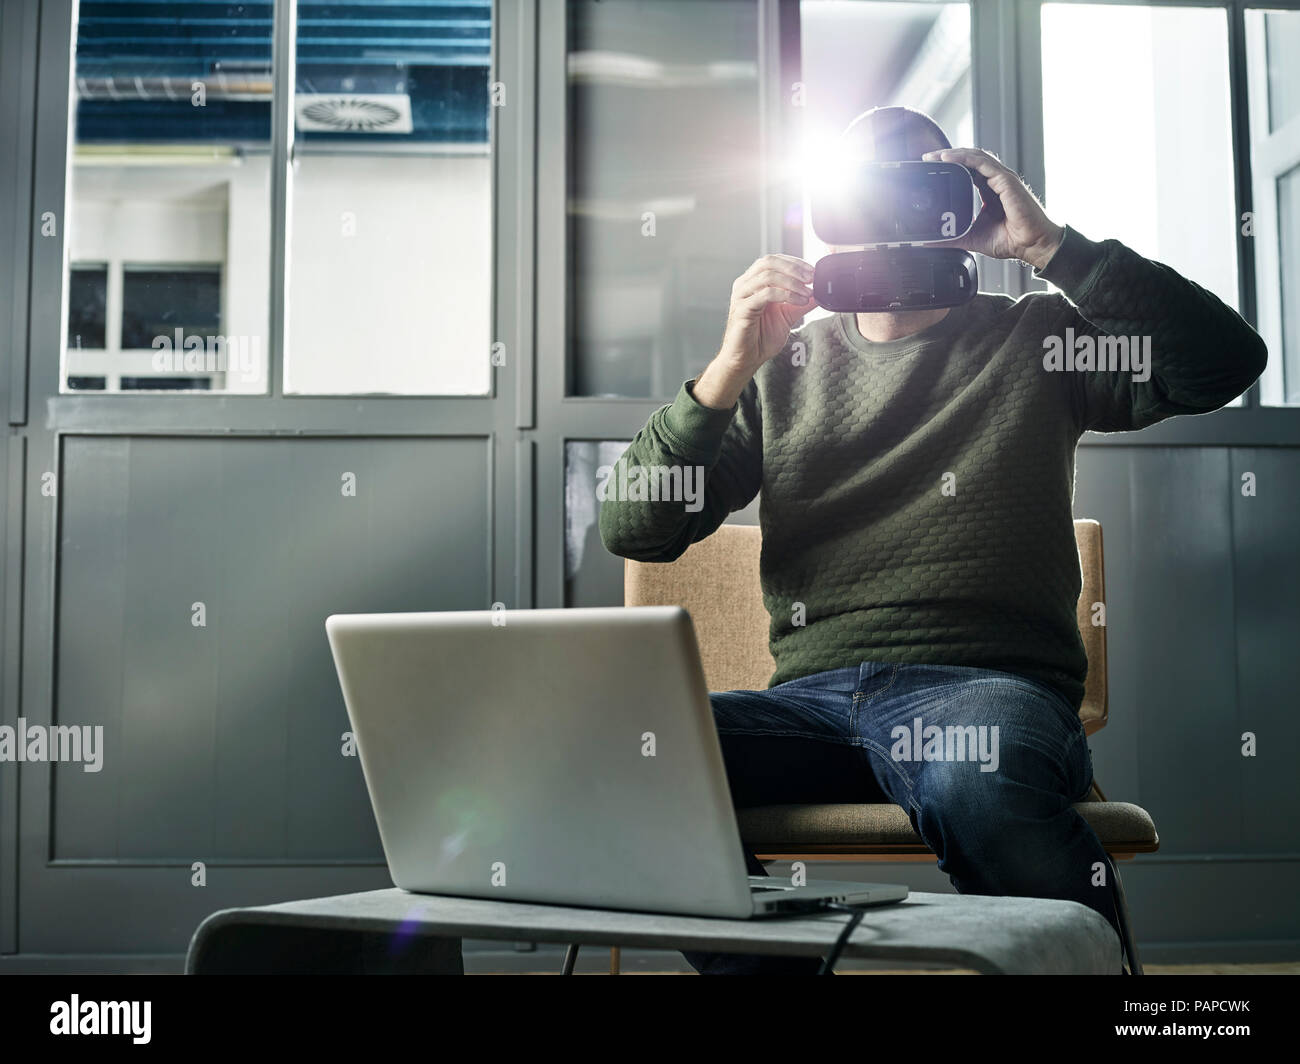 Man working with VR glasses and laptop - Stock Image